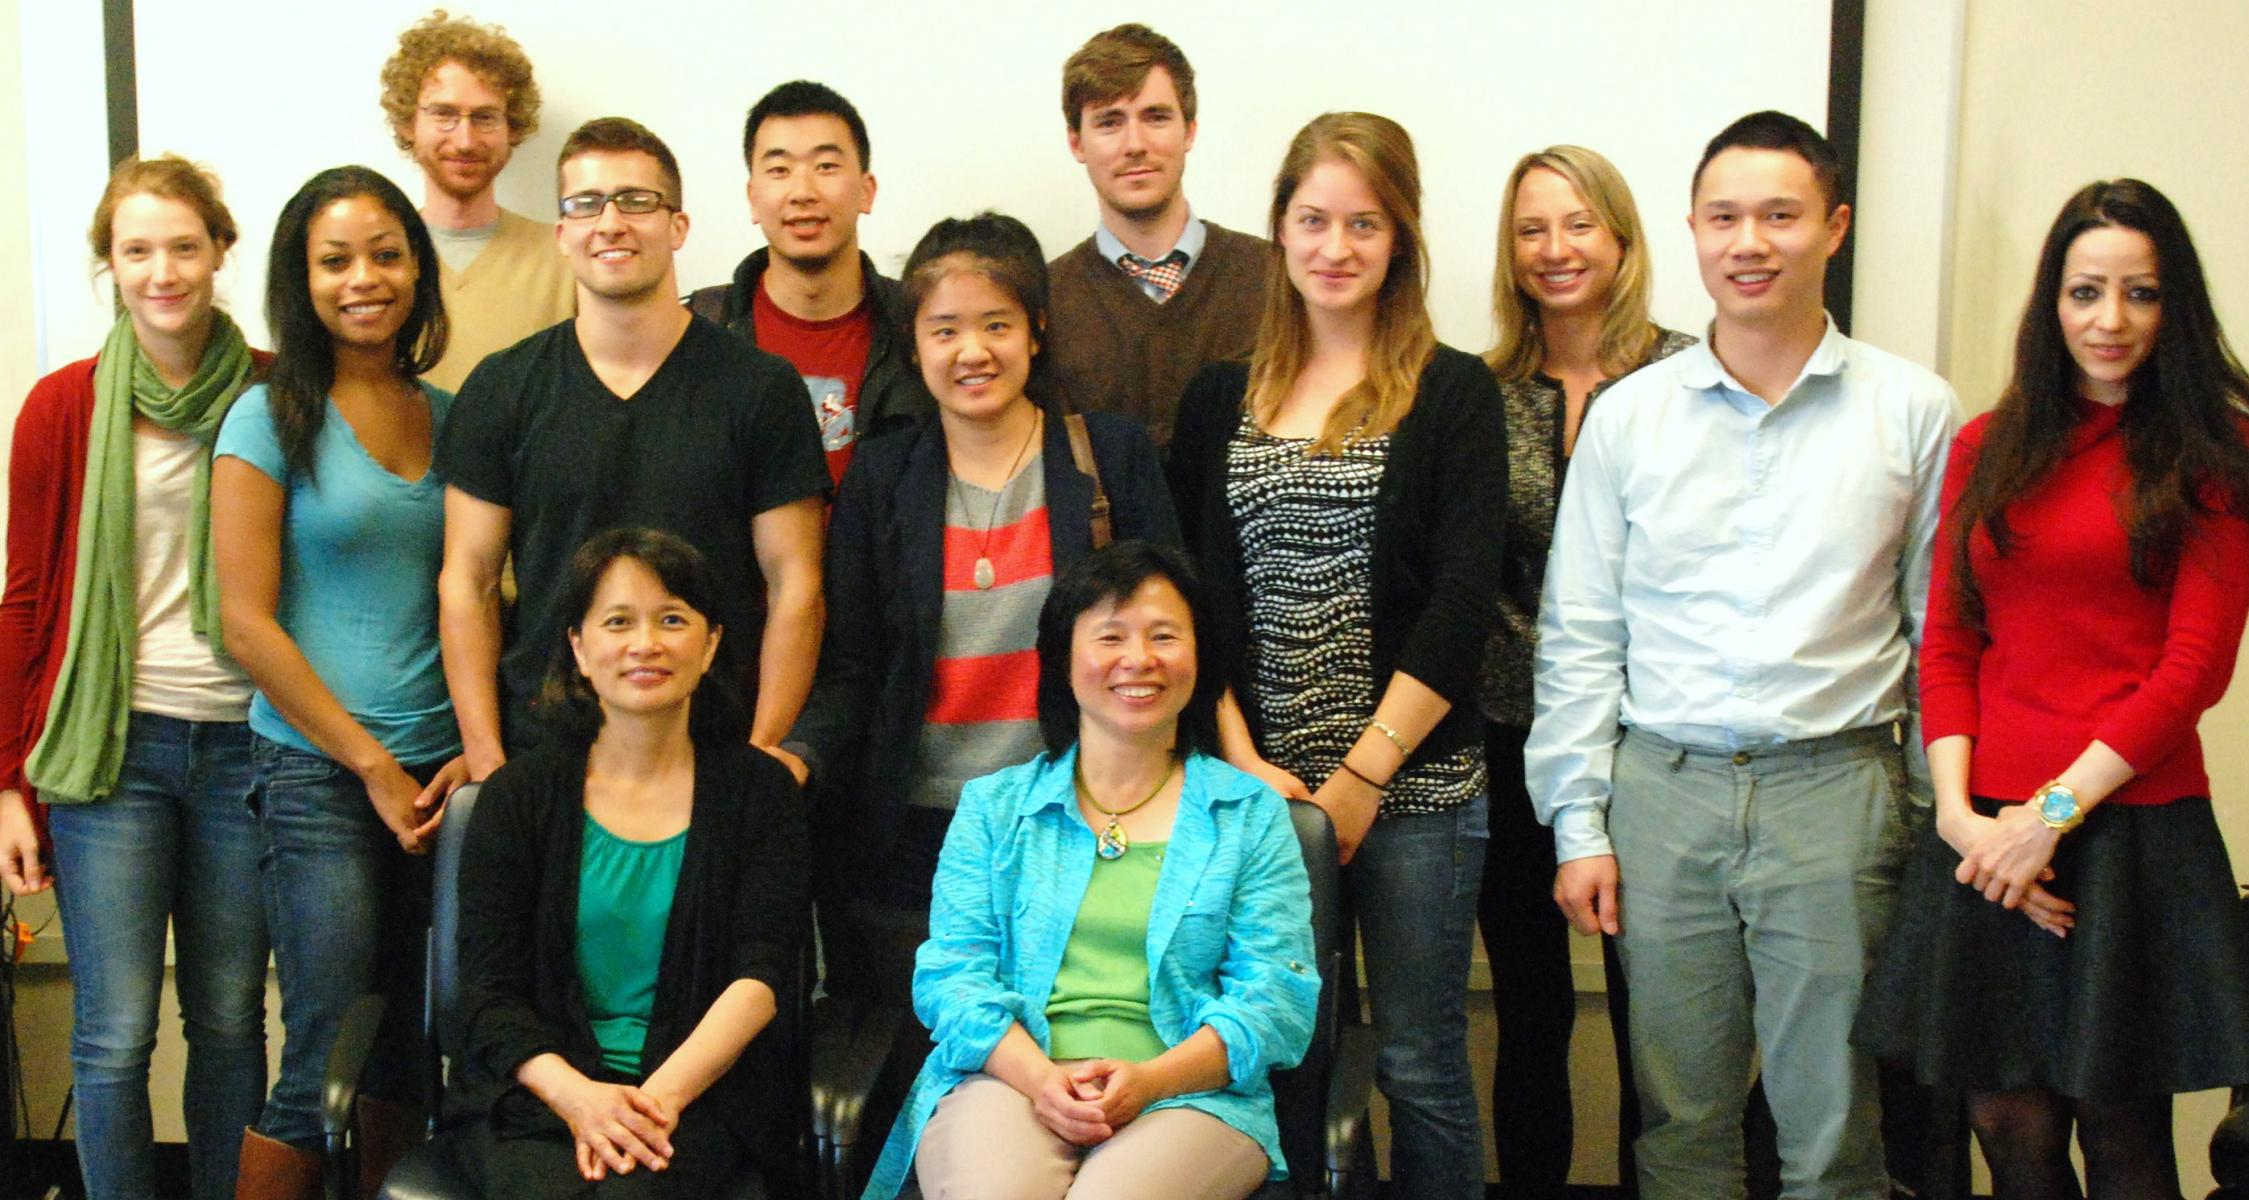 Cohort 5 Class students with Dr. Lily Vhen and Dr. Linda Chen at 2014 orientation meeting